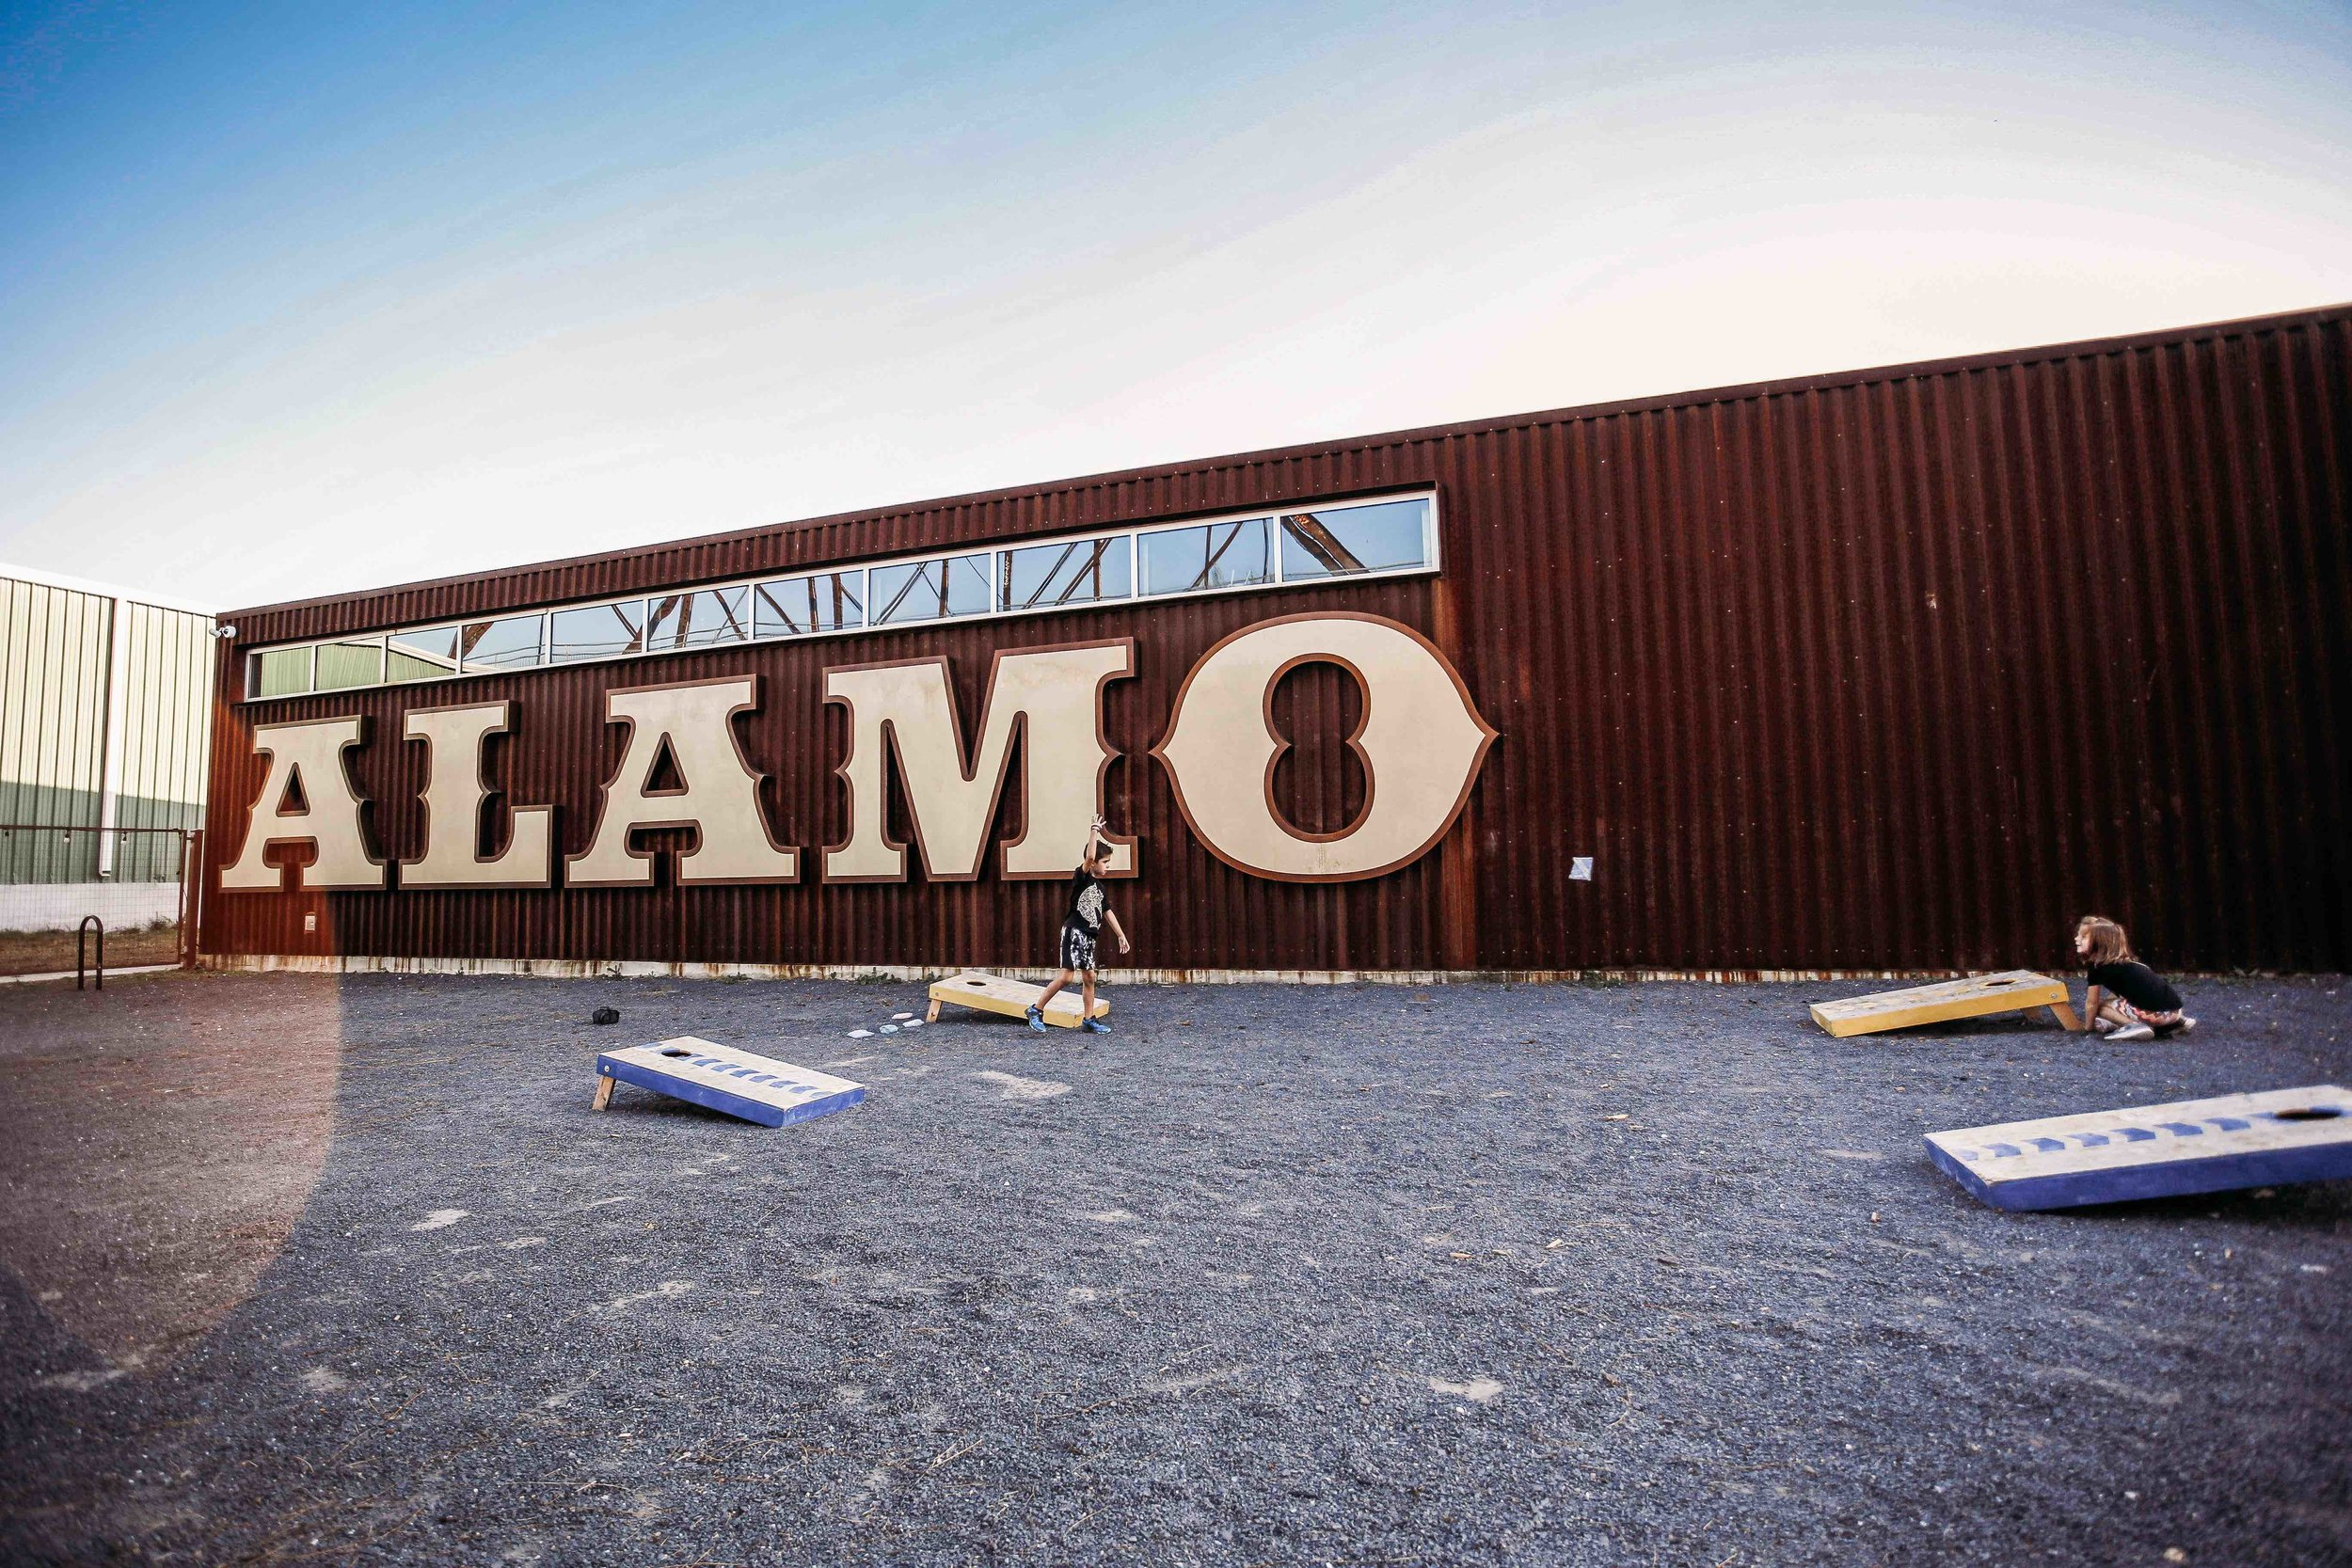 Alamo Beer Co00001.jpeg